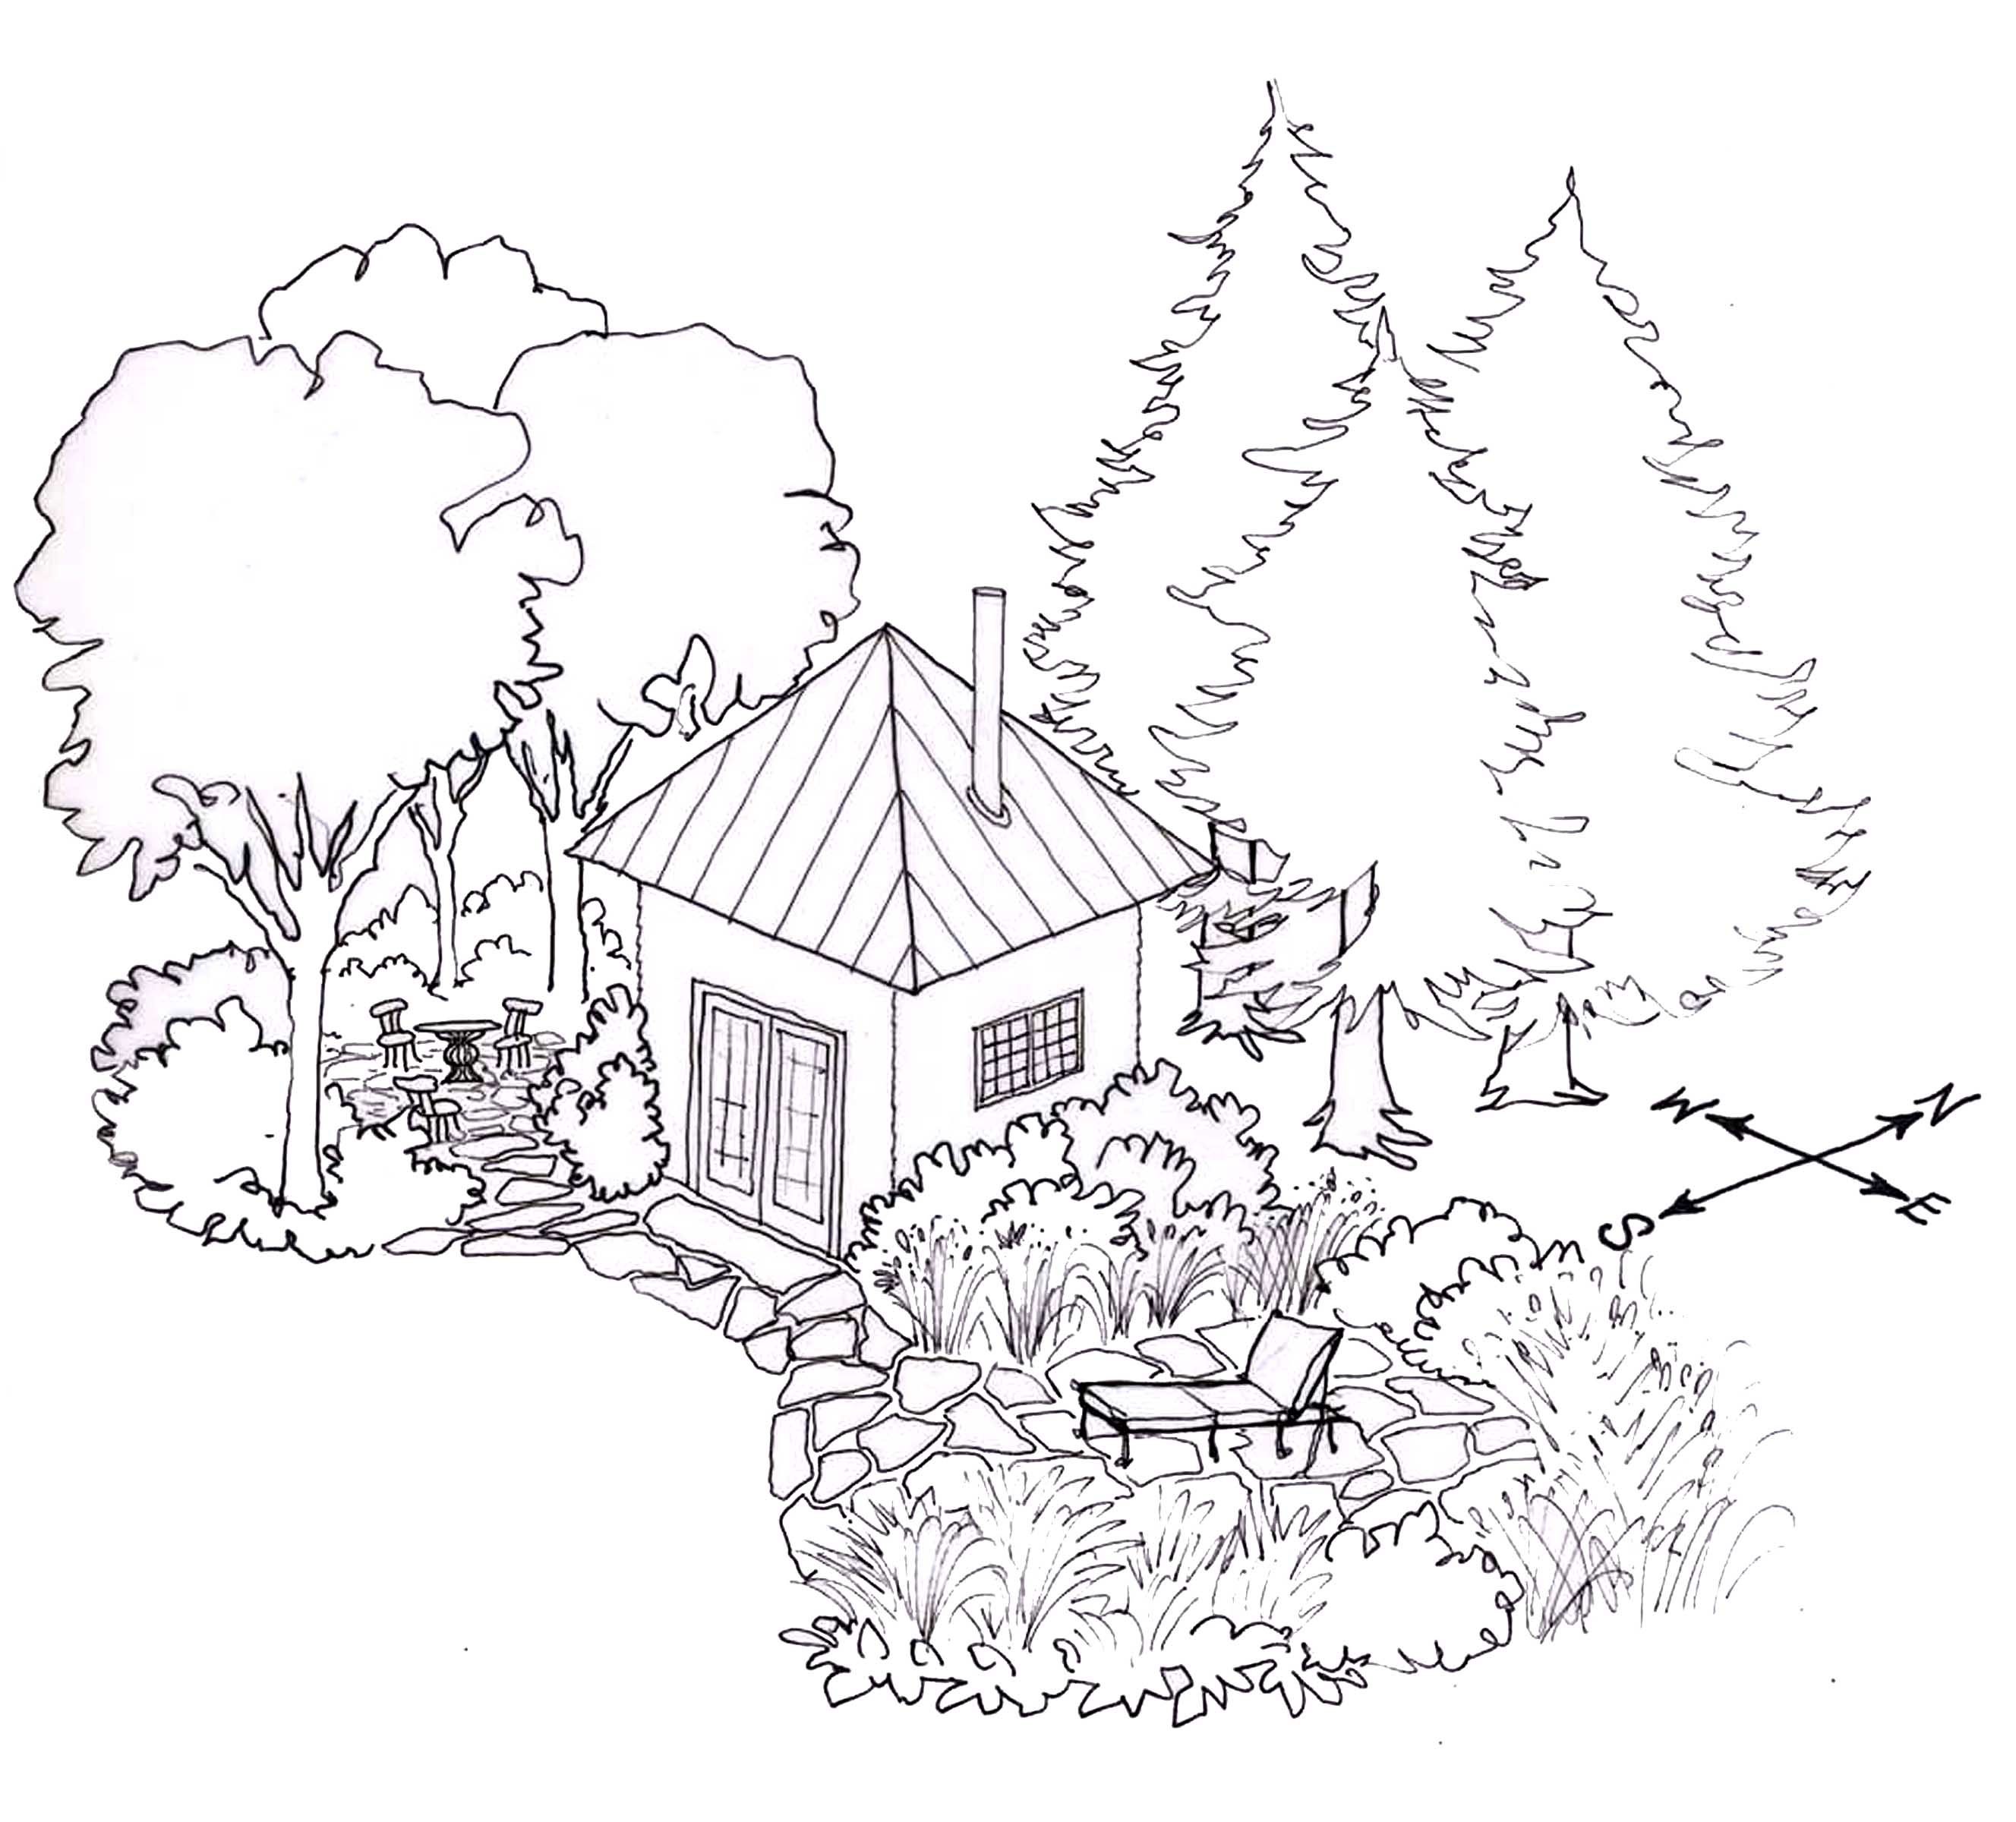 Forest Habitat Drawing At Getdrawings